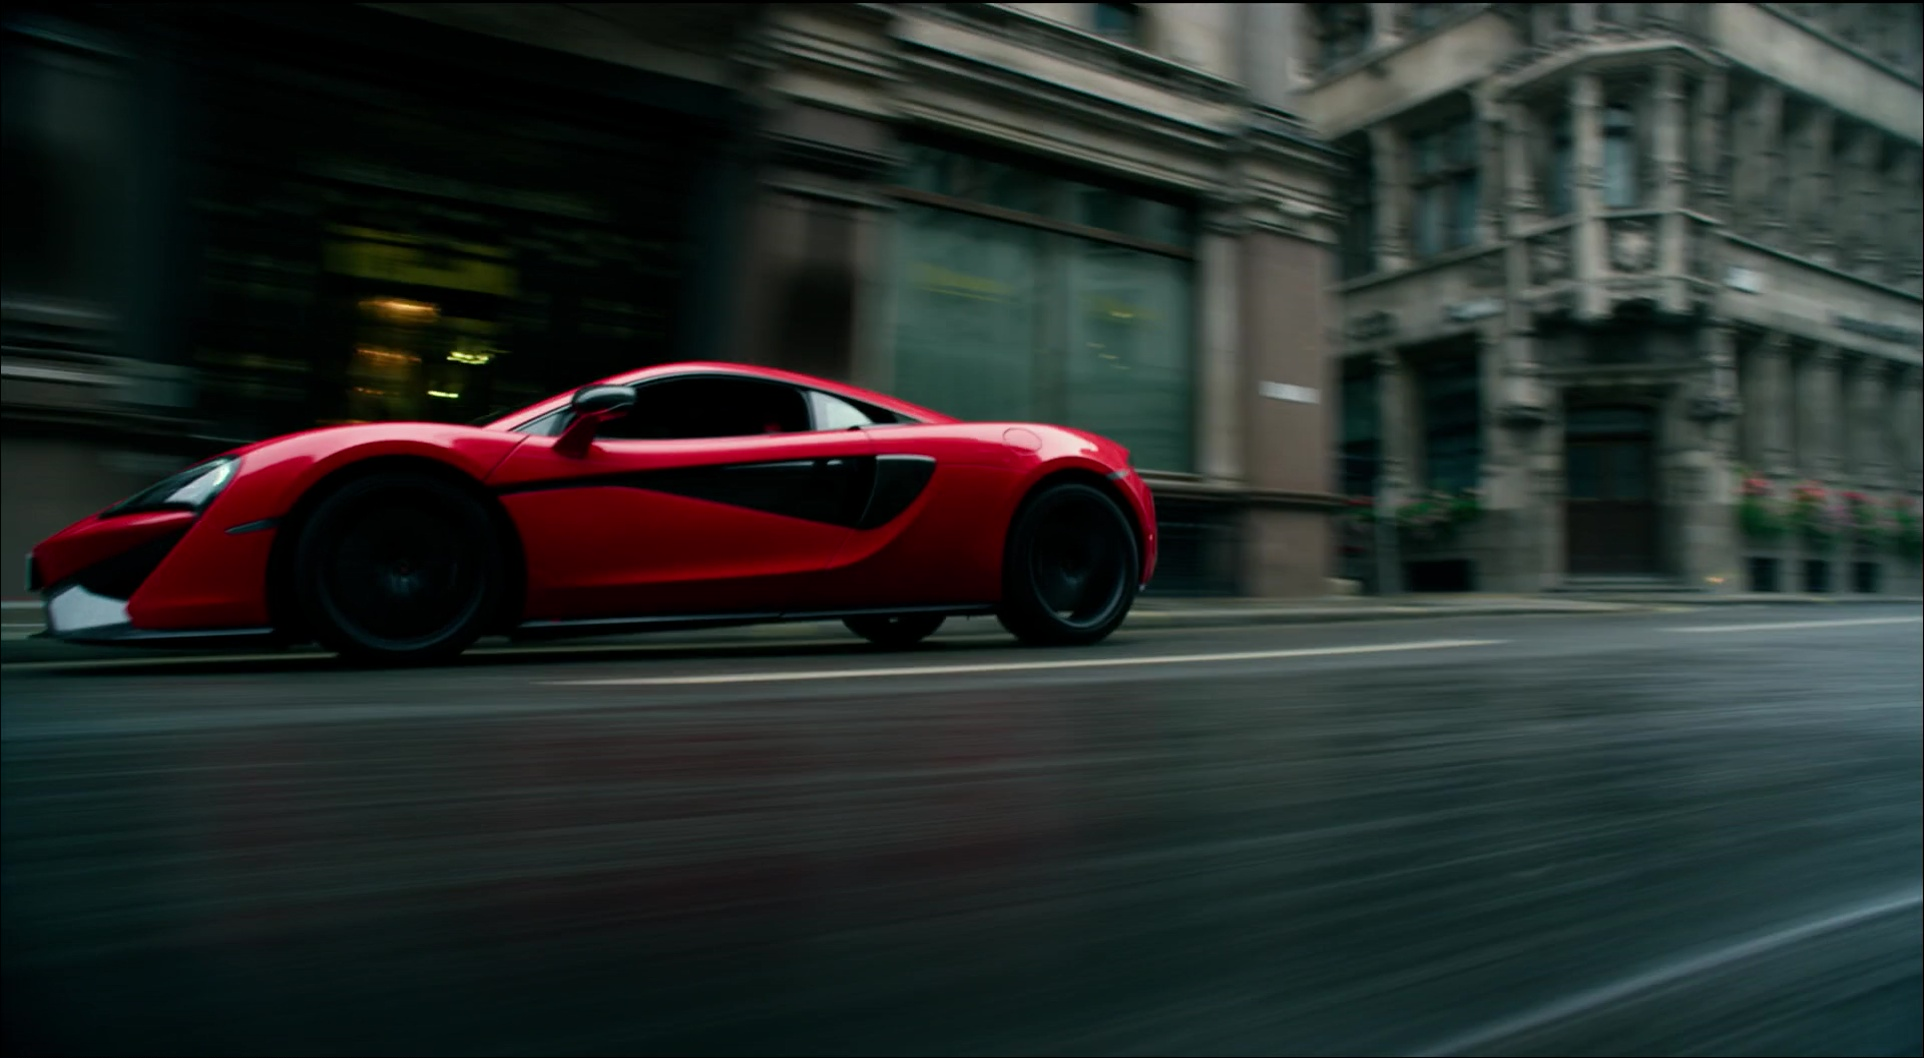 Red Mclaren 570s Car In Transformers 5 The Last Knight